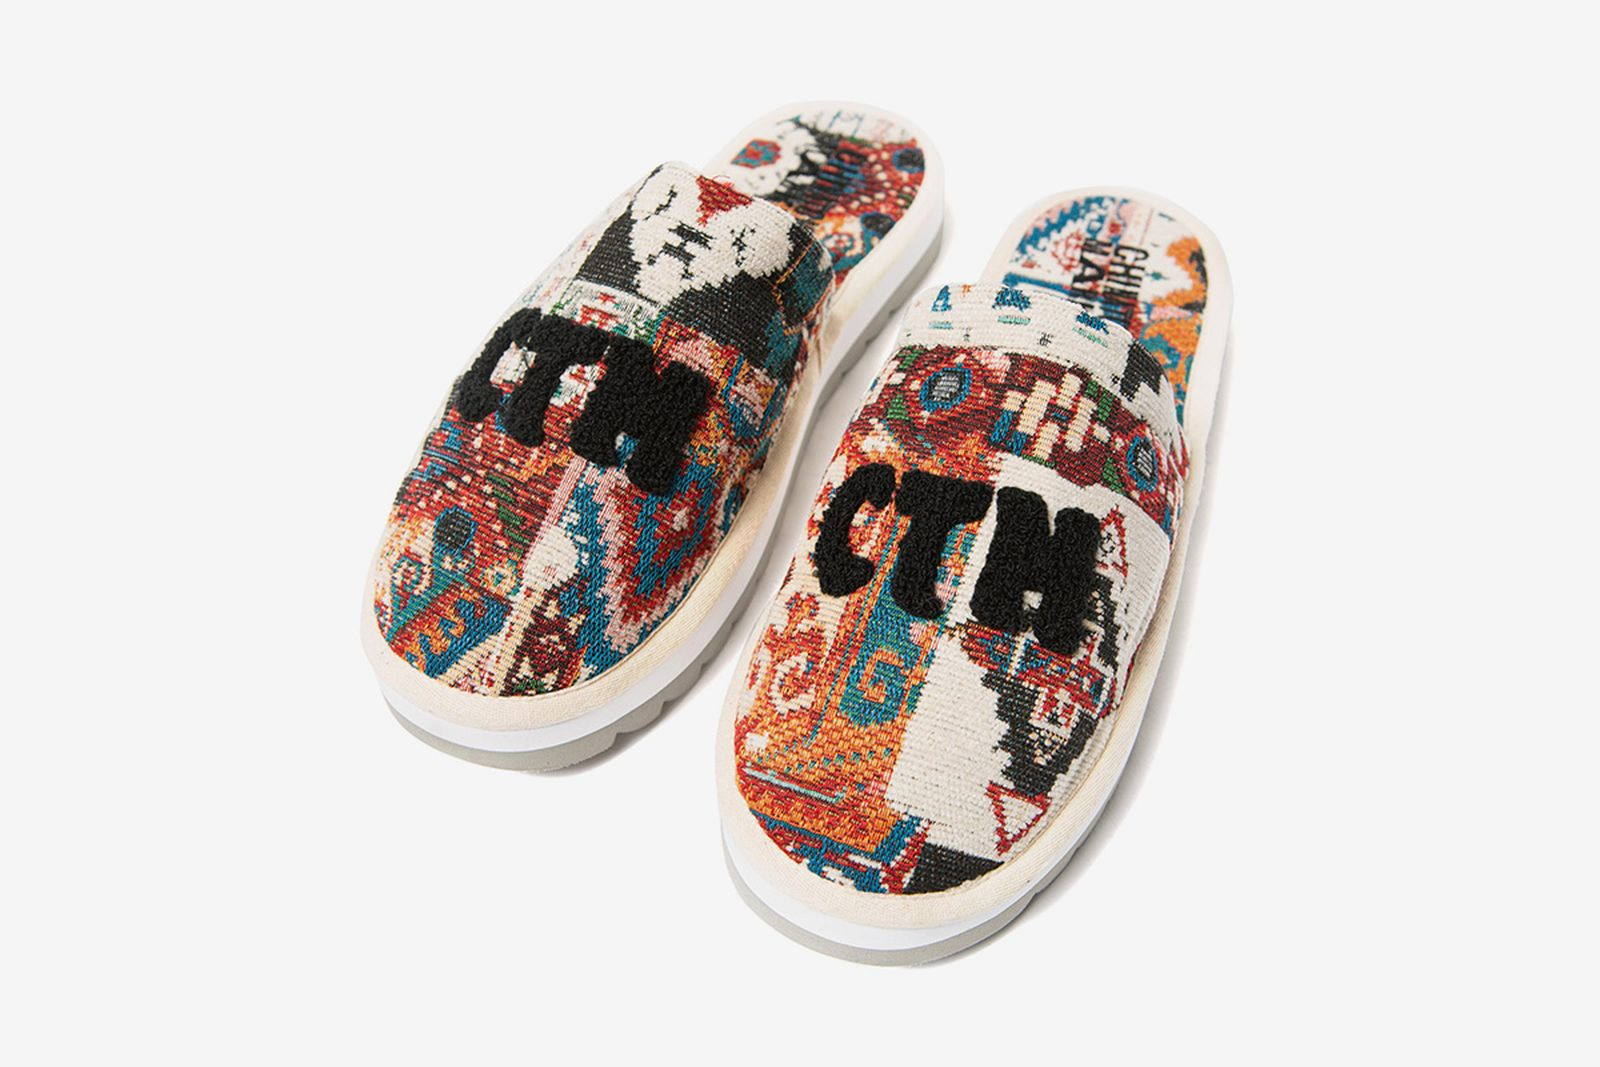 chinatown-market-hotel-slippers-release-date-price-06